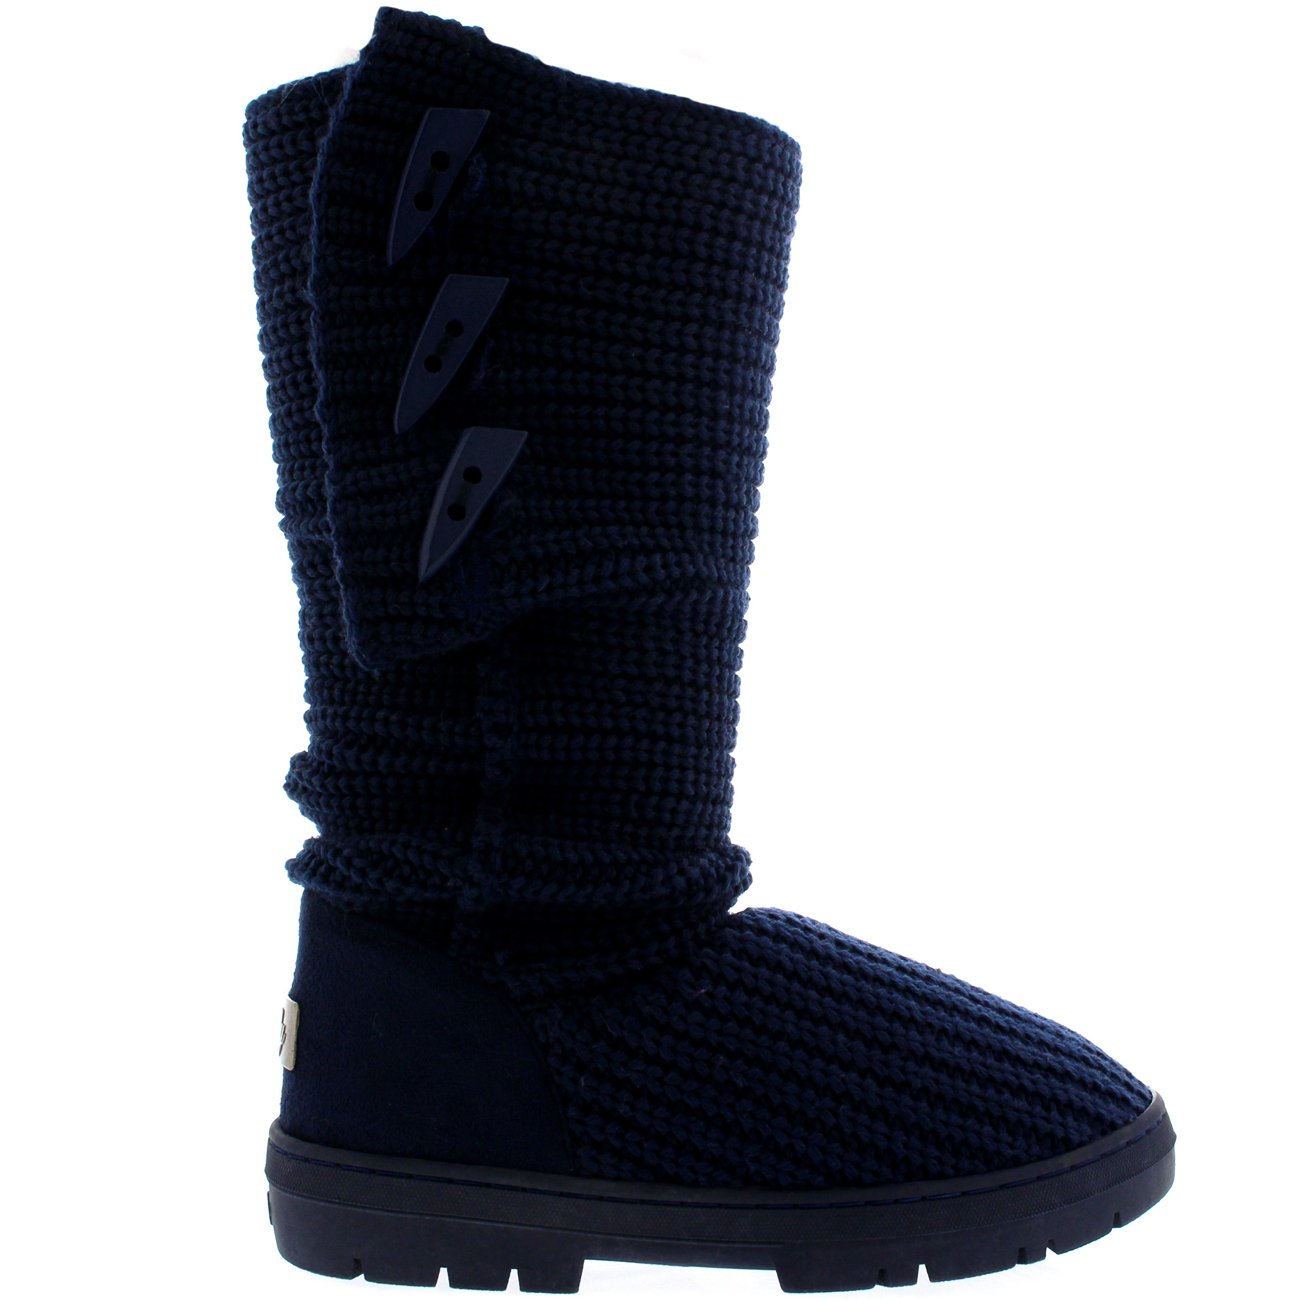 Holly Womens Snow Boot Knitted Short Winter Snow Rain Warm Waterproof Boots